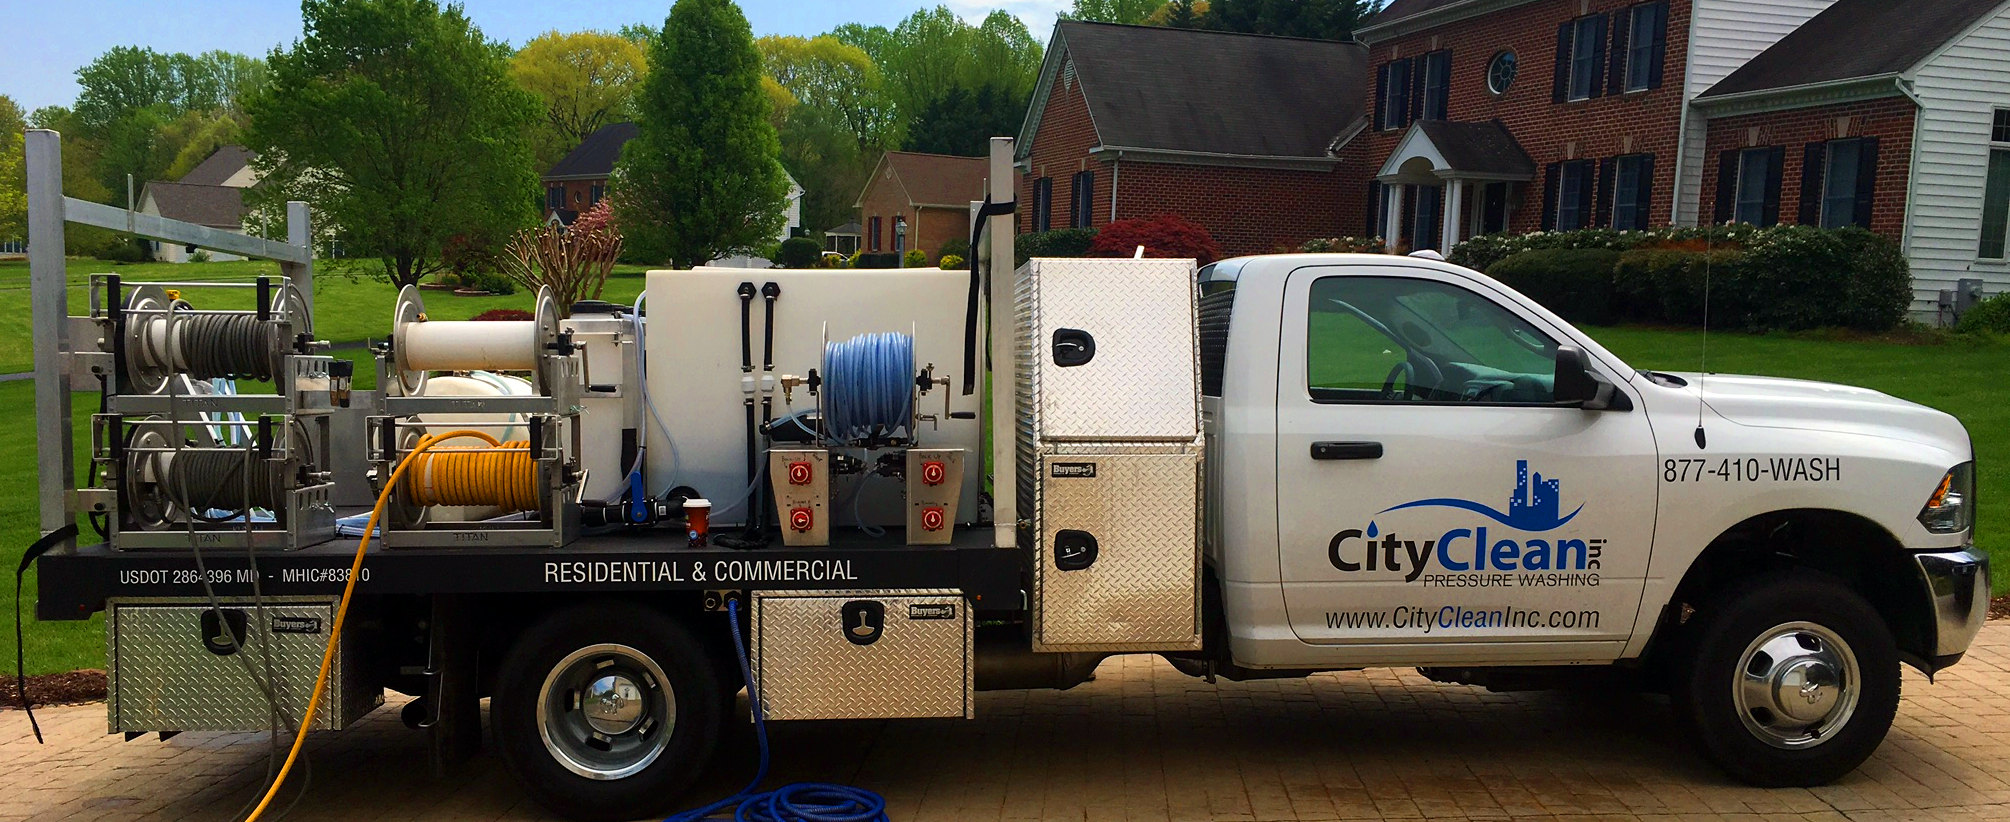 City Clean Inc  - House Washing in Maryland